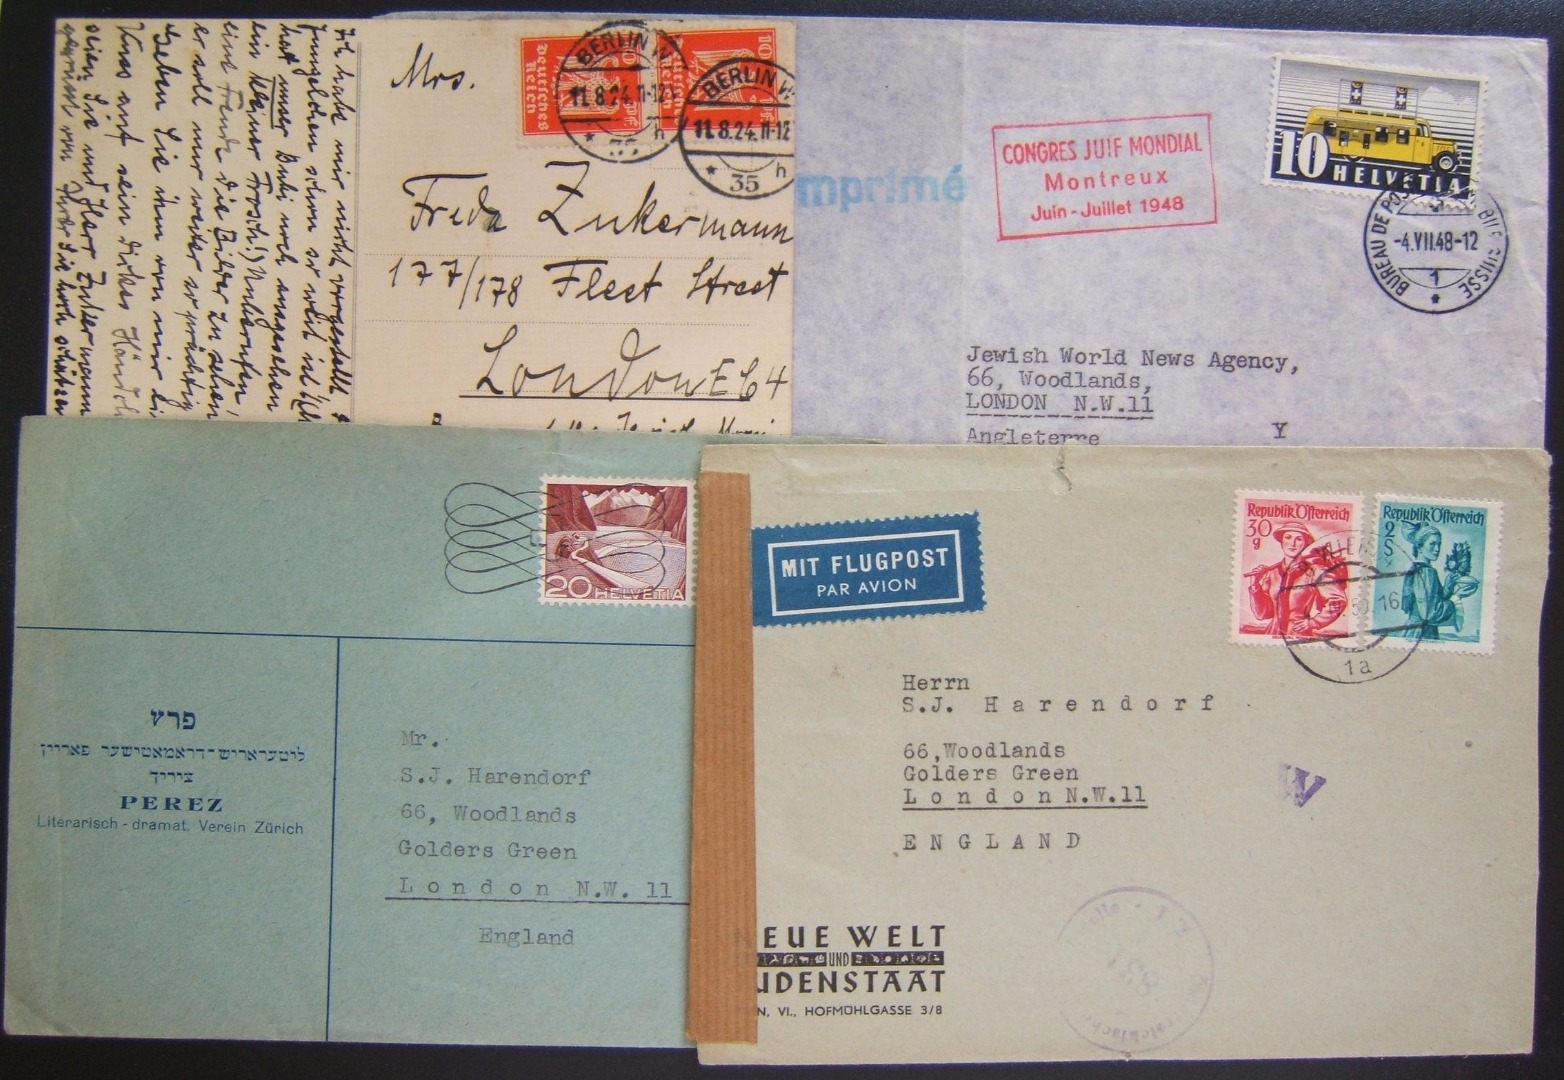 Lot x6 covers + 1 postcard sent between Jewish news and cultural organizations in Europe, 1924/1948-50; some on business stationary; x2 covers with cachets for 1948 World Jewish Co